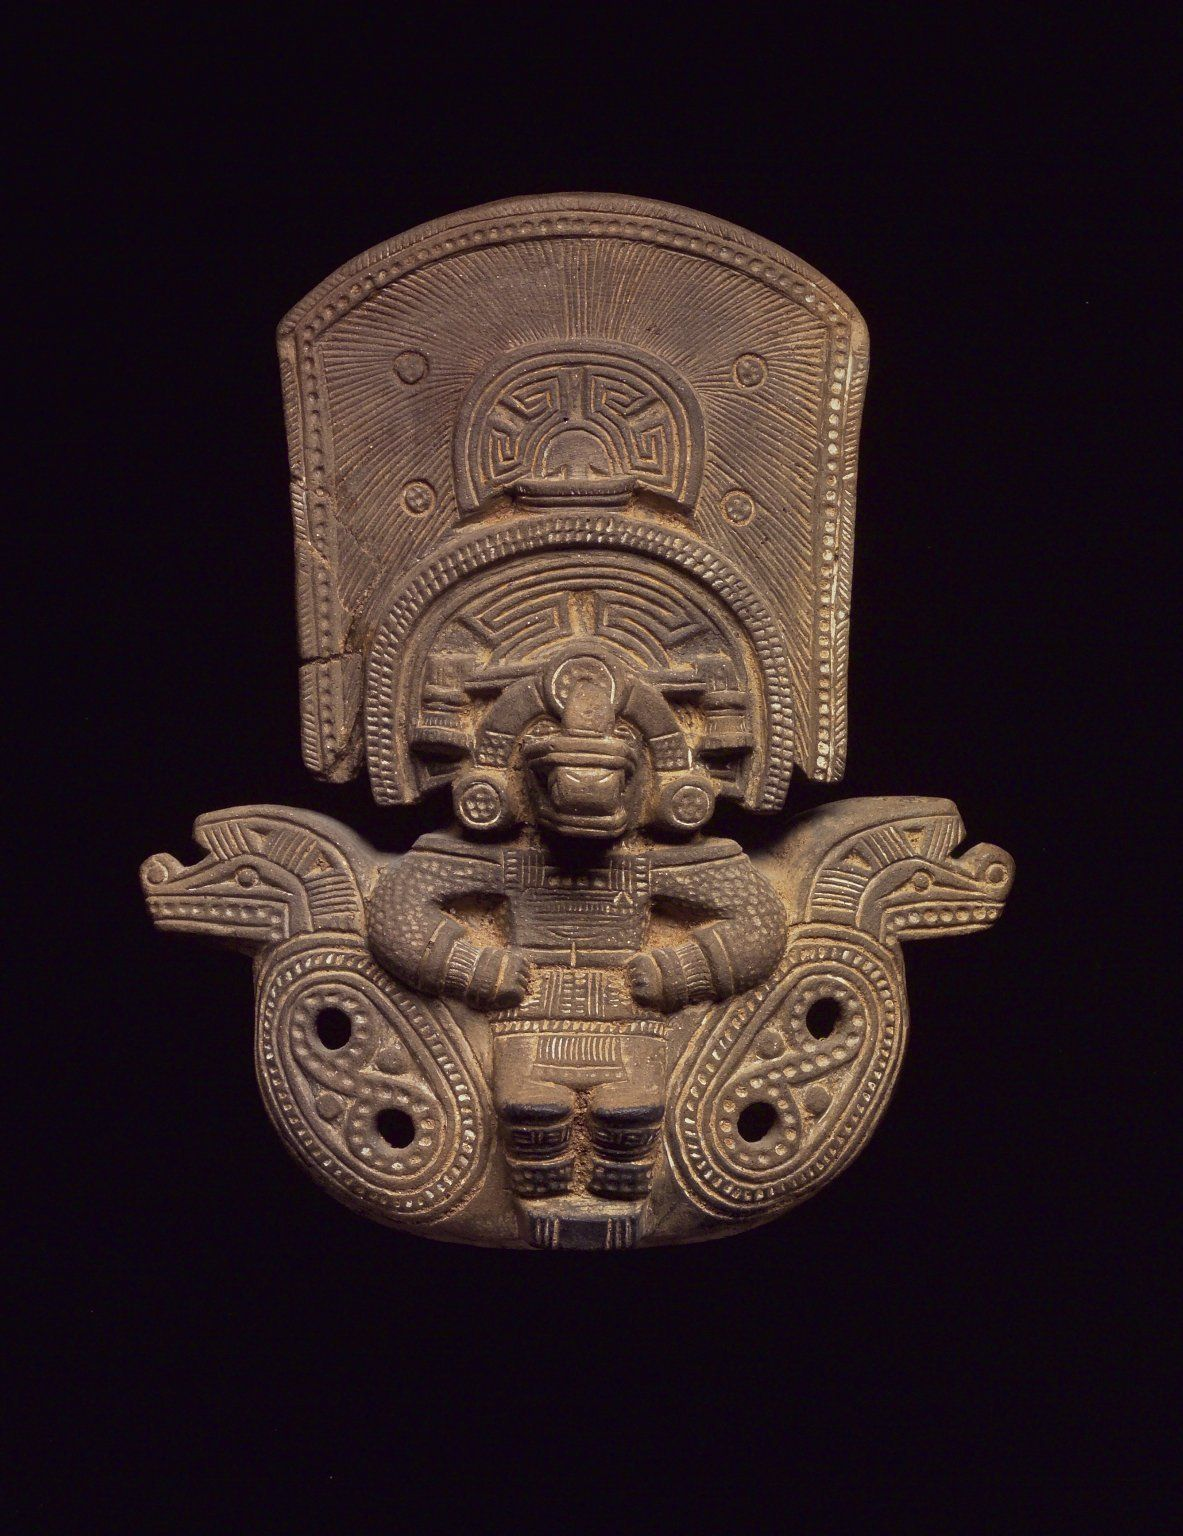 Theancientwayoflife Ocarina In The Form Of A Seated Figure Culture Tairona Medium Ceramic Place Of Origin Colombia Date Mayan Art Hispanic Art Ancient